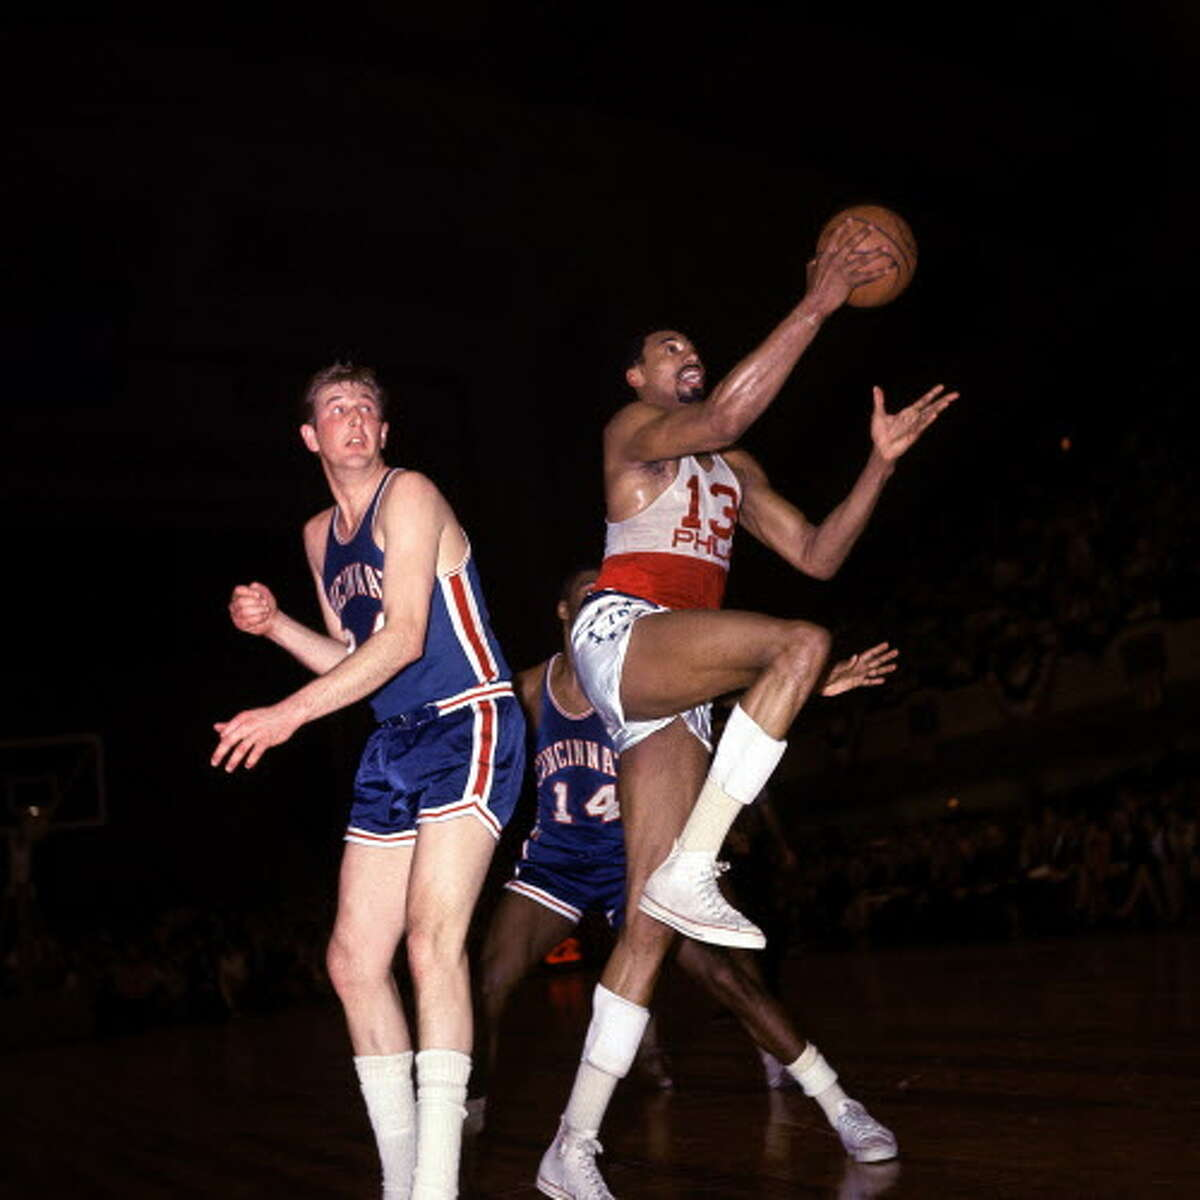 1966-67 Philadelphia 76ers 68-13 Wilt Chamberlain (24.1 PPG, 24.2 PPG, 7.8 APG) flanked by Hall of Famers Hal Greet, Chet Walker, and Billy Cunningham. Chamberlain wasn't the 7-foot-1 destroyer of worlds who once averaged 50.4 points per night, but the Dipper was still a force of nature. The Sixers dominated Bill Russell and the Boston Celtics in the Eastern Division Finals before dispatching Rick Barry and the San Francisco Warriors 4-2 in the Finals.